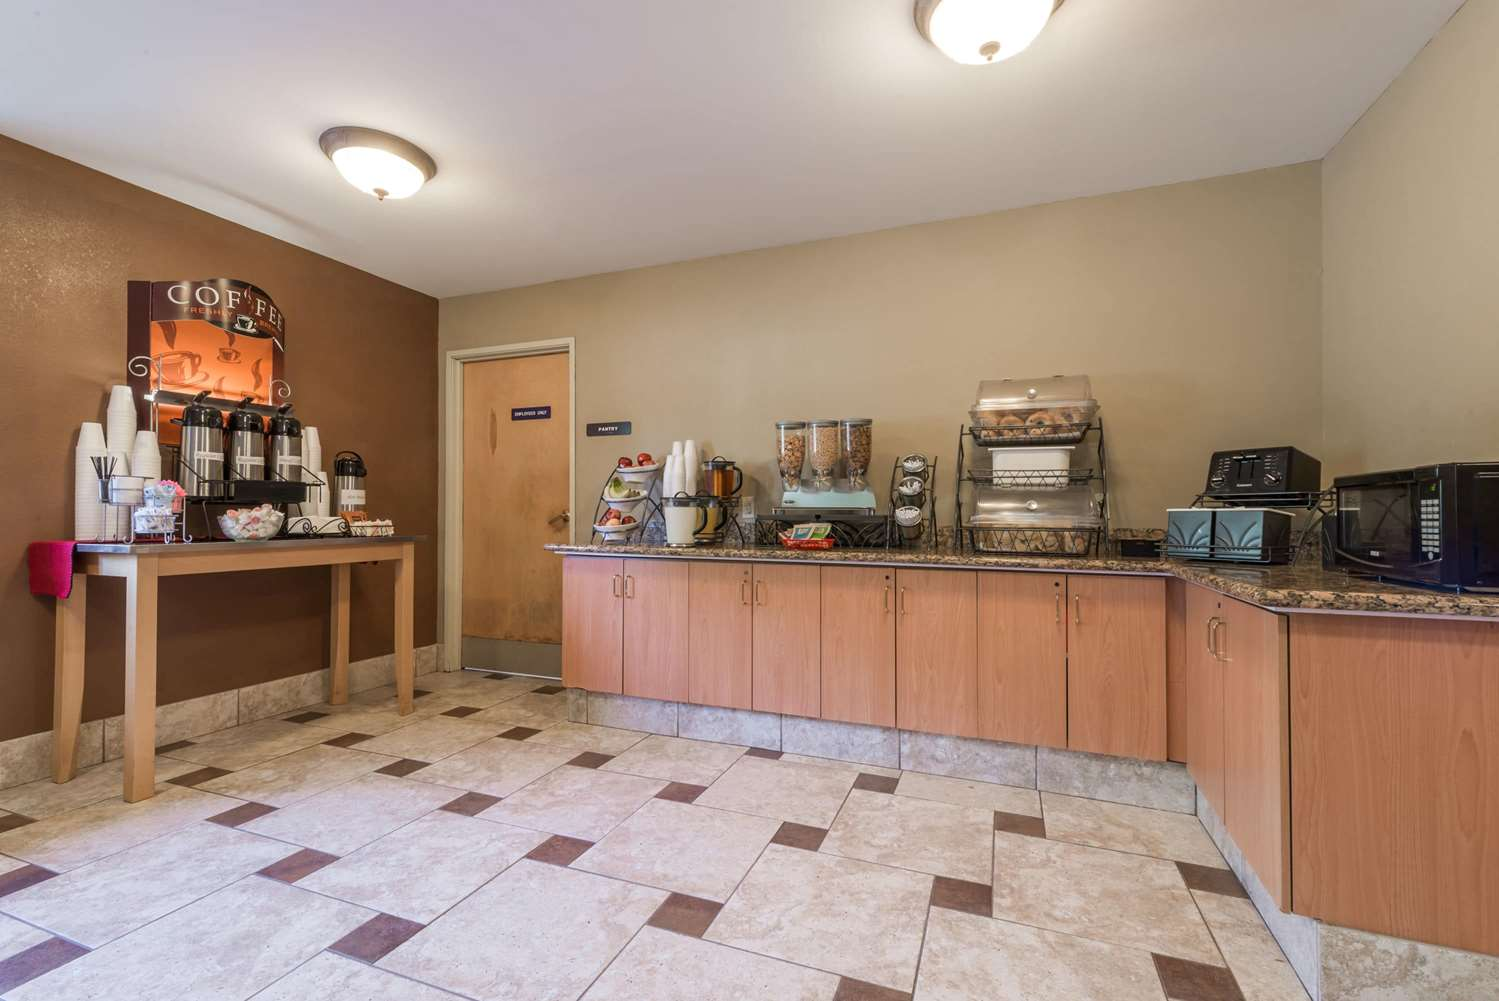 proam - Microtel Inn & Suites by Wyndham West Chester